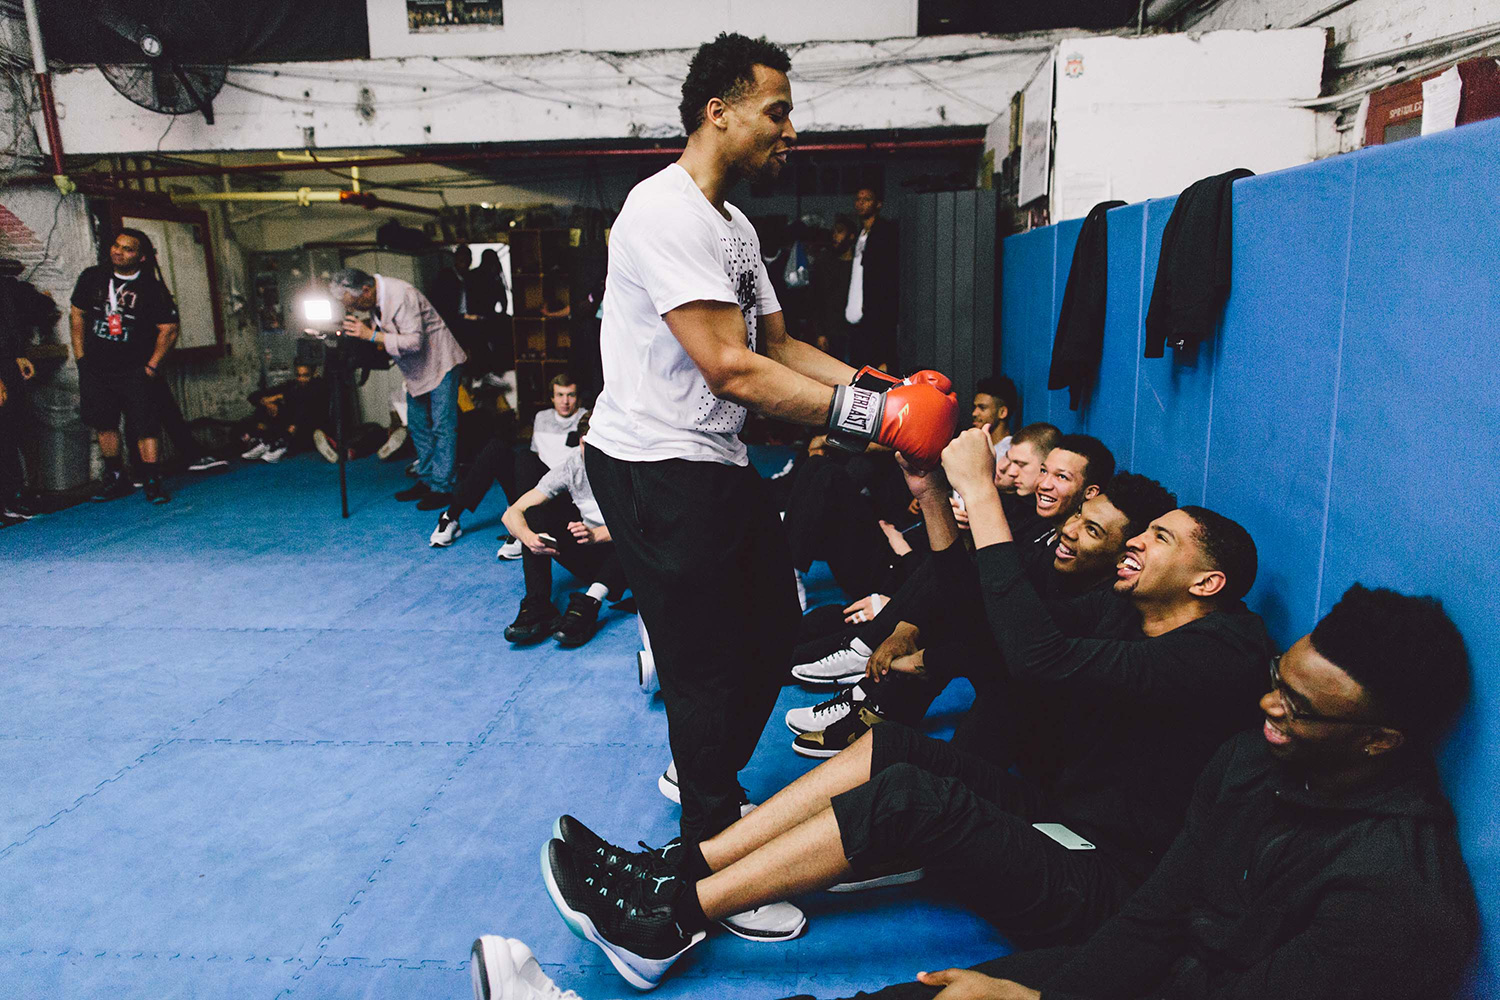 After practice the team went down to Church Street Boxing gym and learned some techniques from elite trainers.